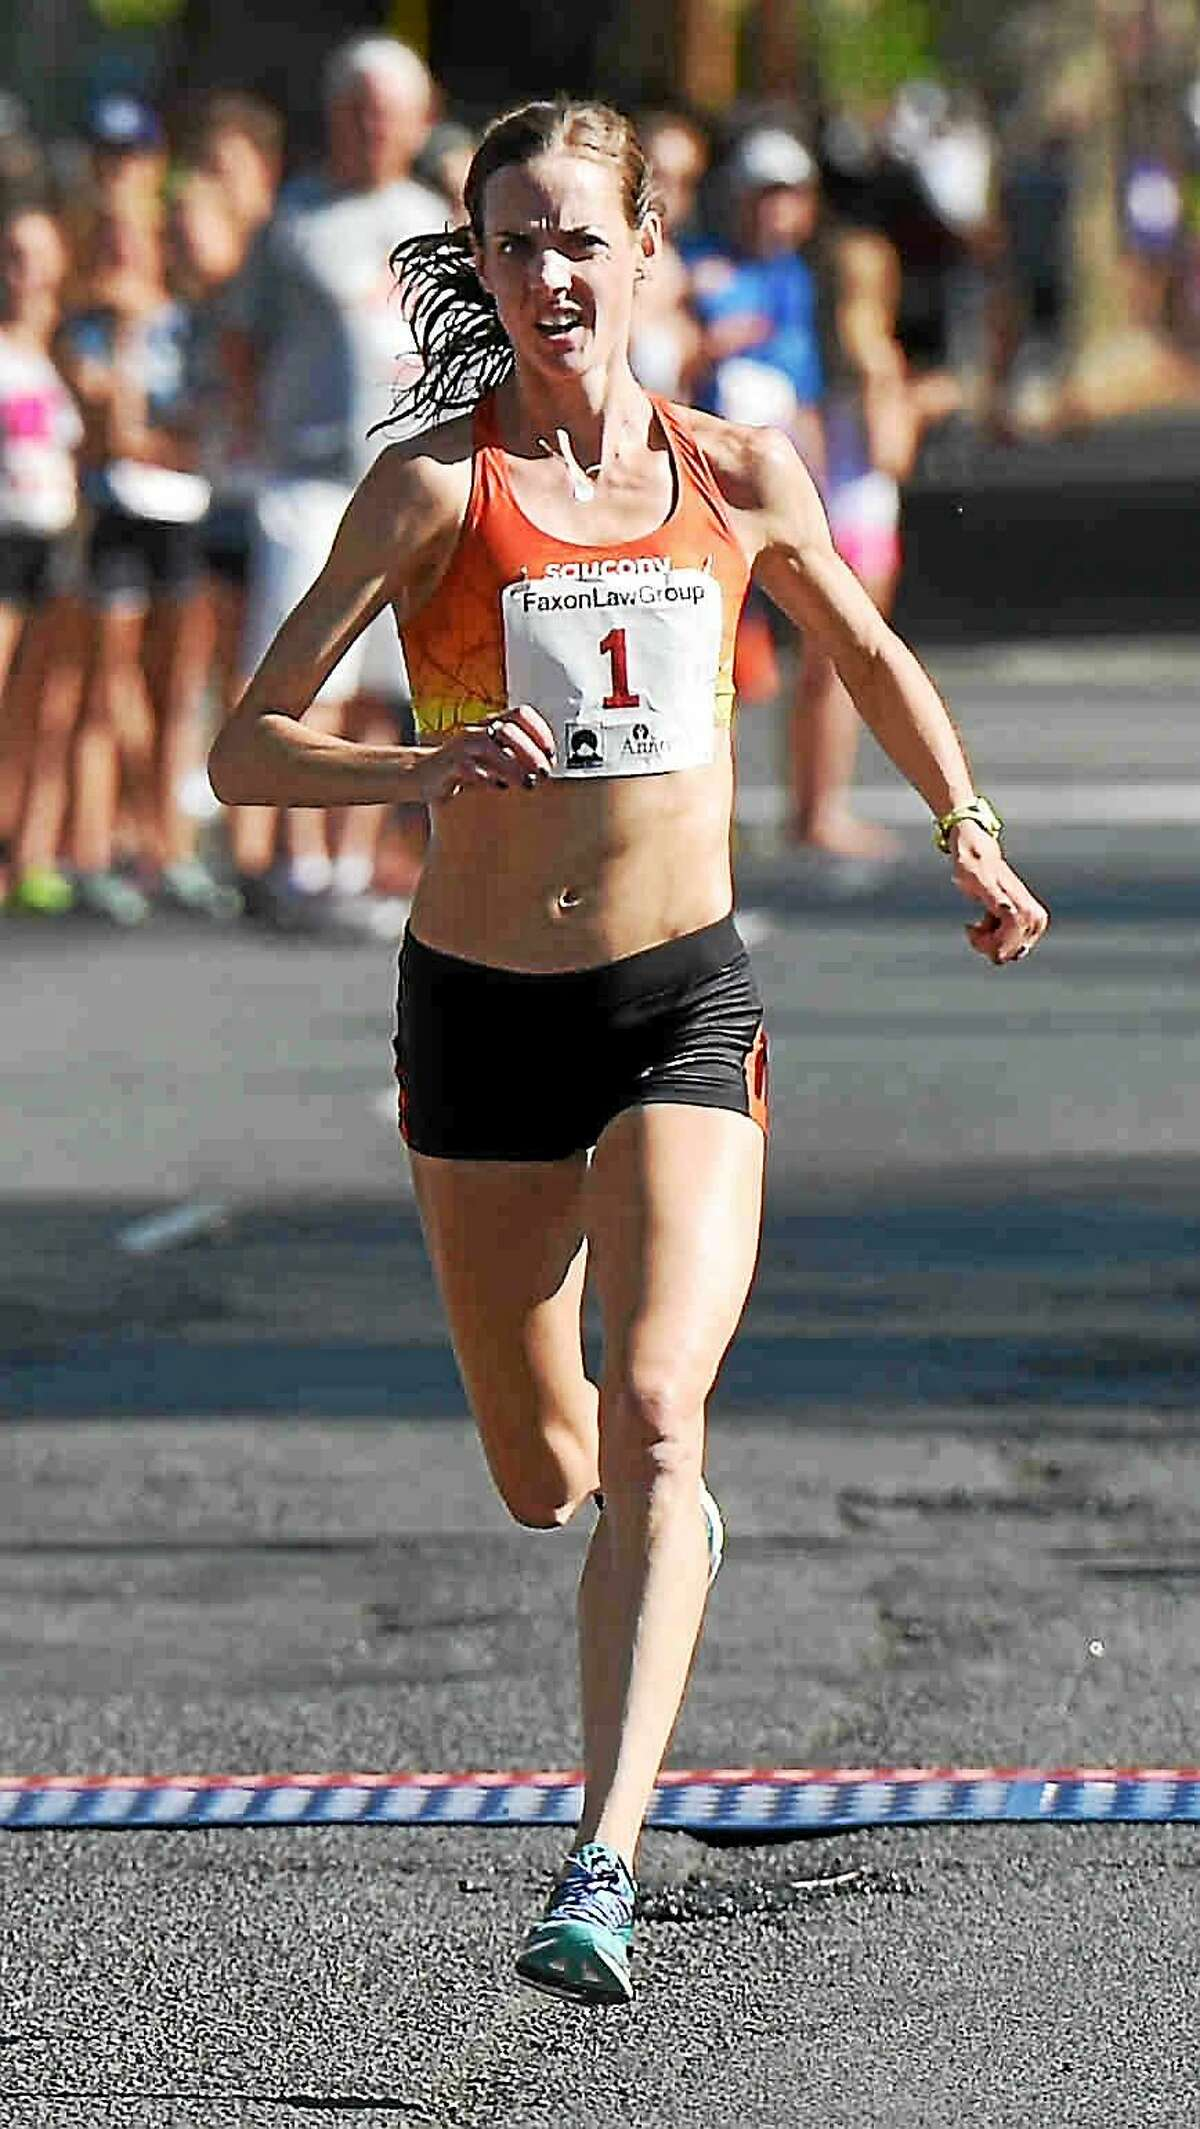 Molly Huddle runs towards the Temple Street finish line, winning the 2015 Faxon Law New Haven Road Race Women's 20K and the 20K Women's National Championship in New Haven, Connecticut, Monday, Sept. 7, 2015, with a time of 1:06.26.